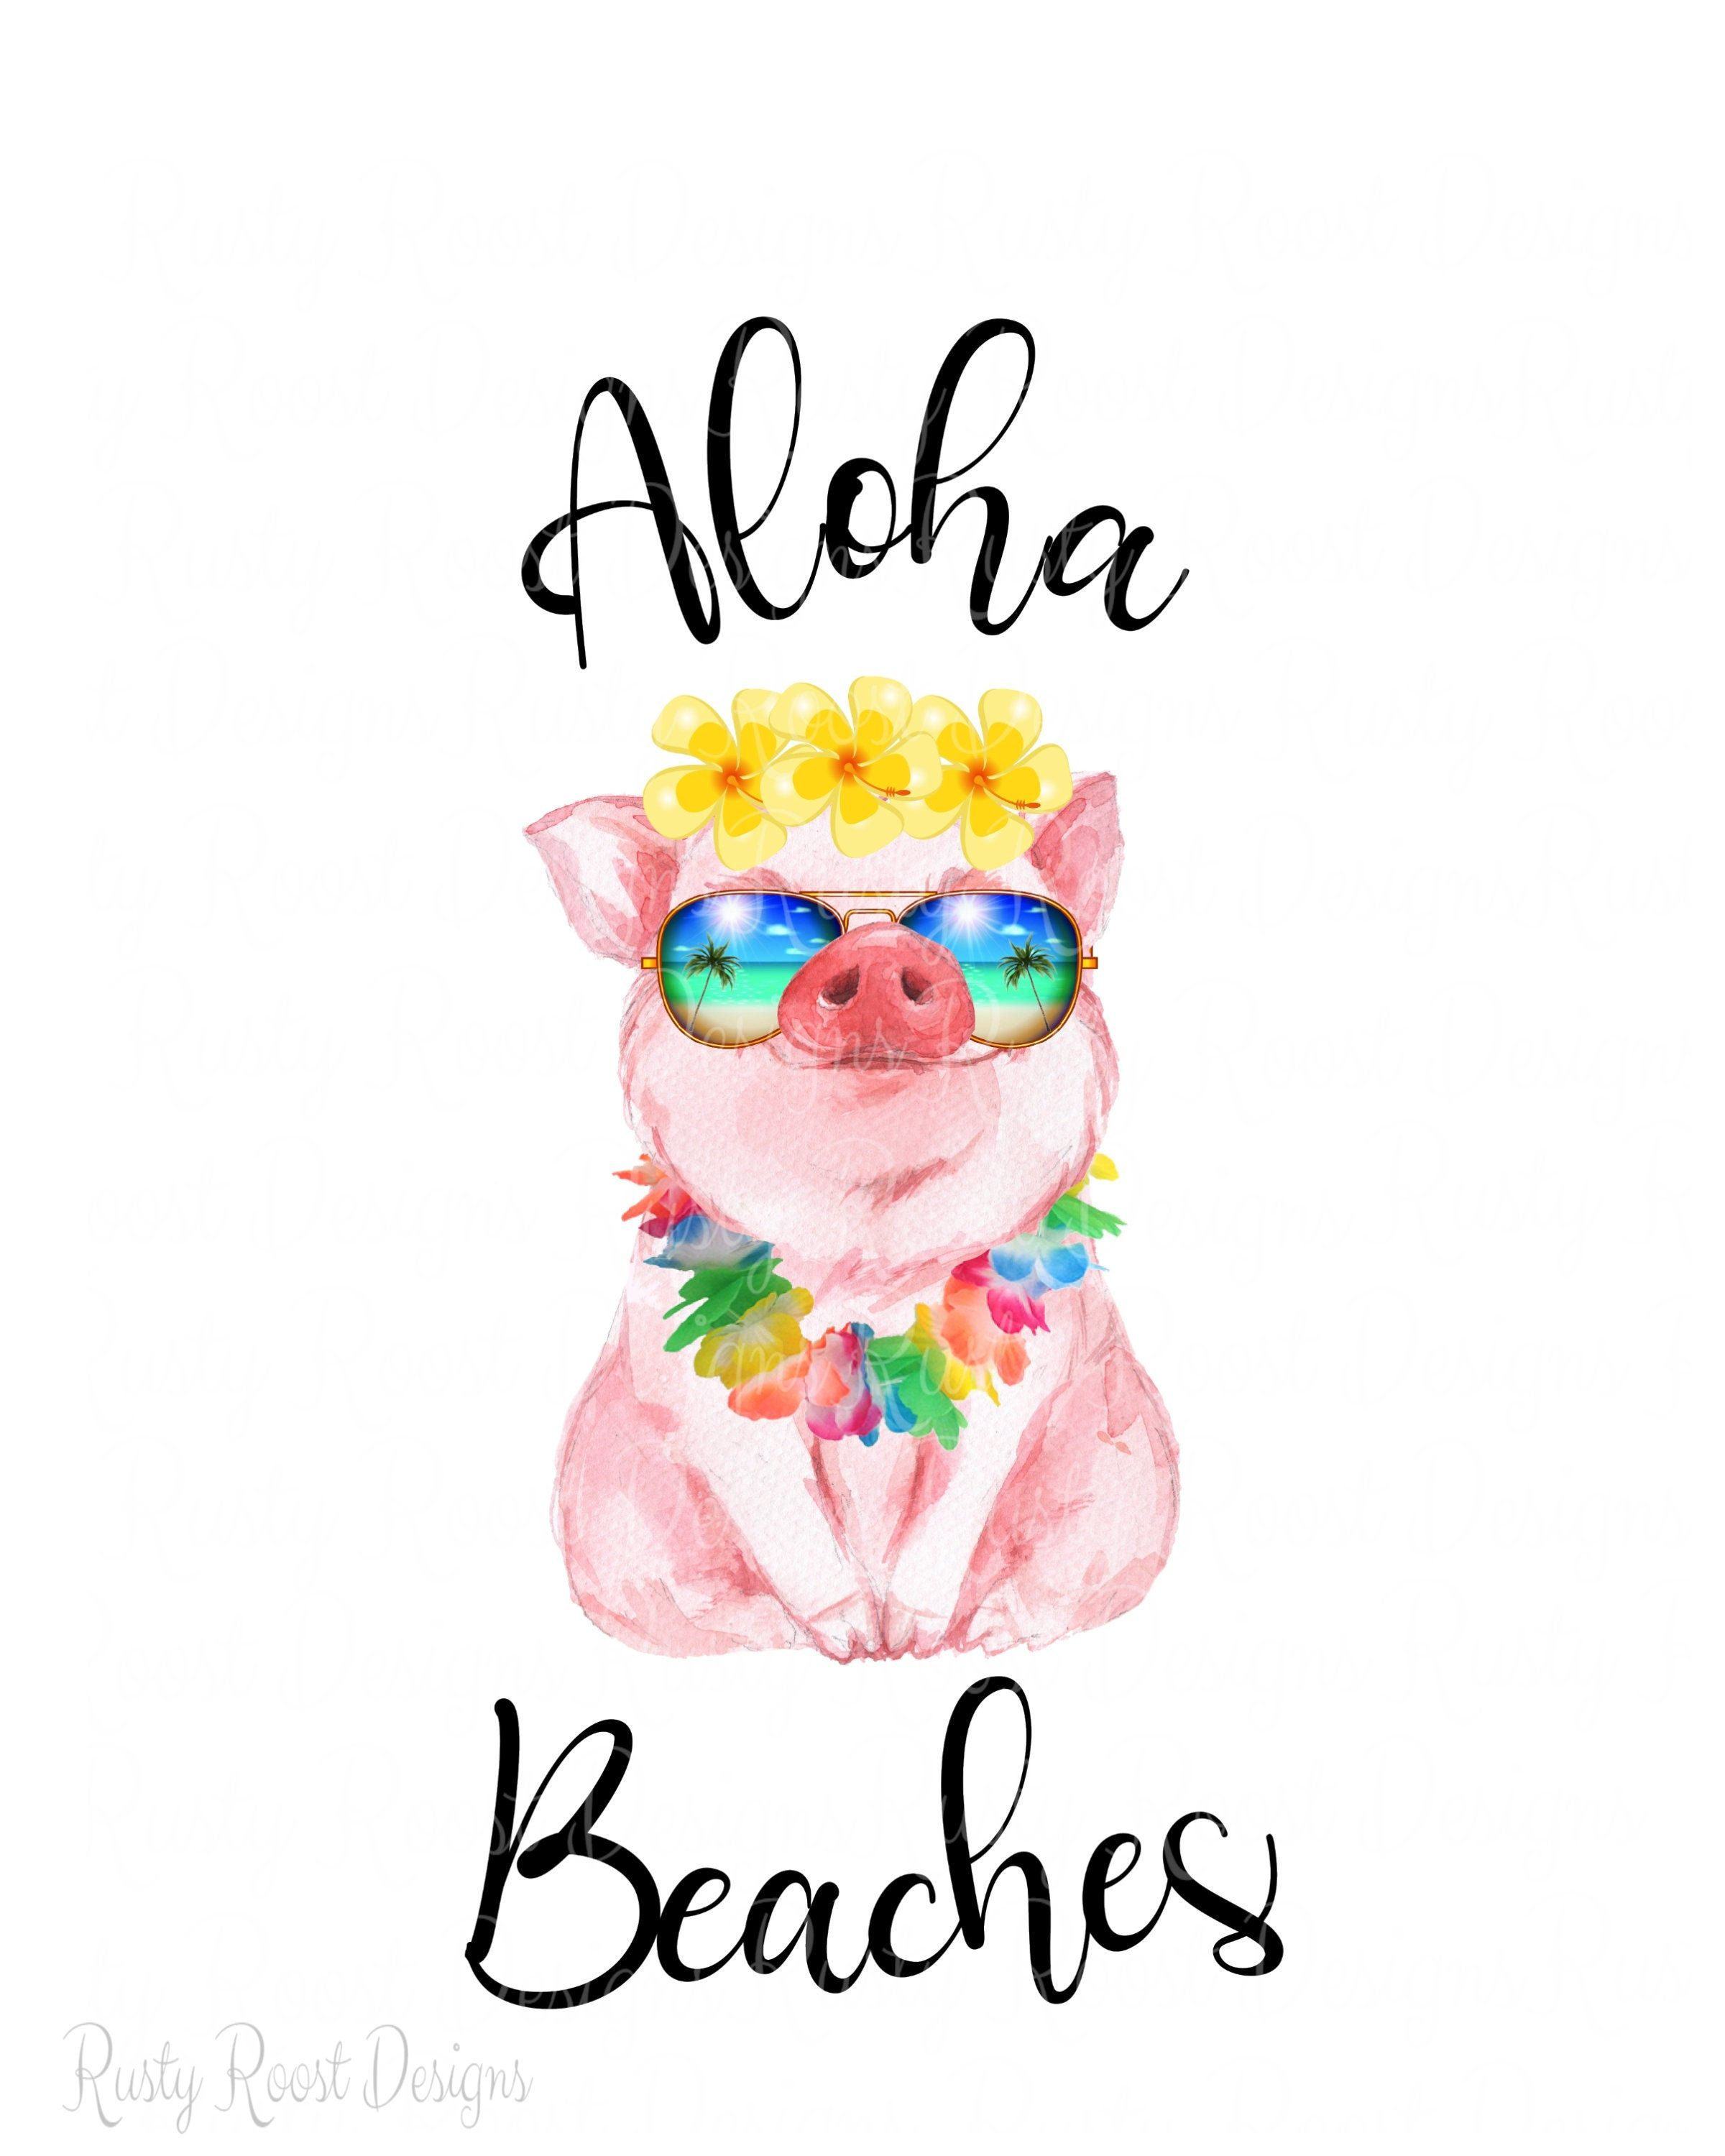 Aloha beaches png,pig with sunglasses,tropical pig png.